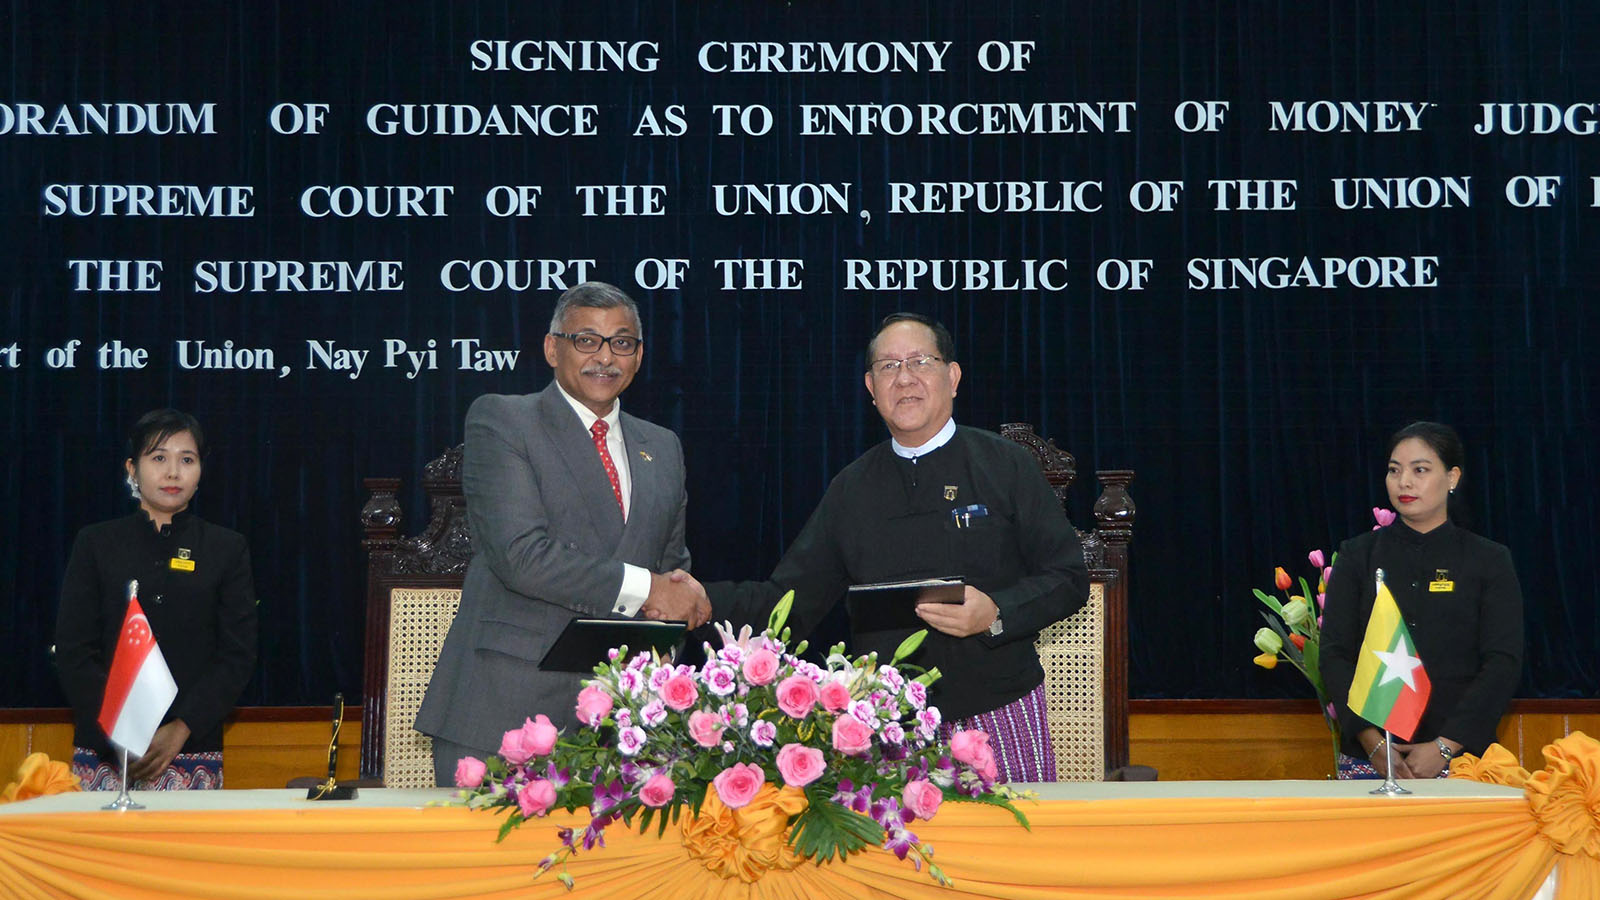 Chief Justice of the Union U Htun Htun Oo and Hon Sundaresh Menon, Singapore Supreme Court's Chief Justice exchange documents at the signing ceremony in Nay Pyi Taw yesterday.Photo: MNA